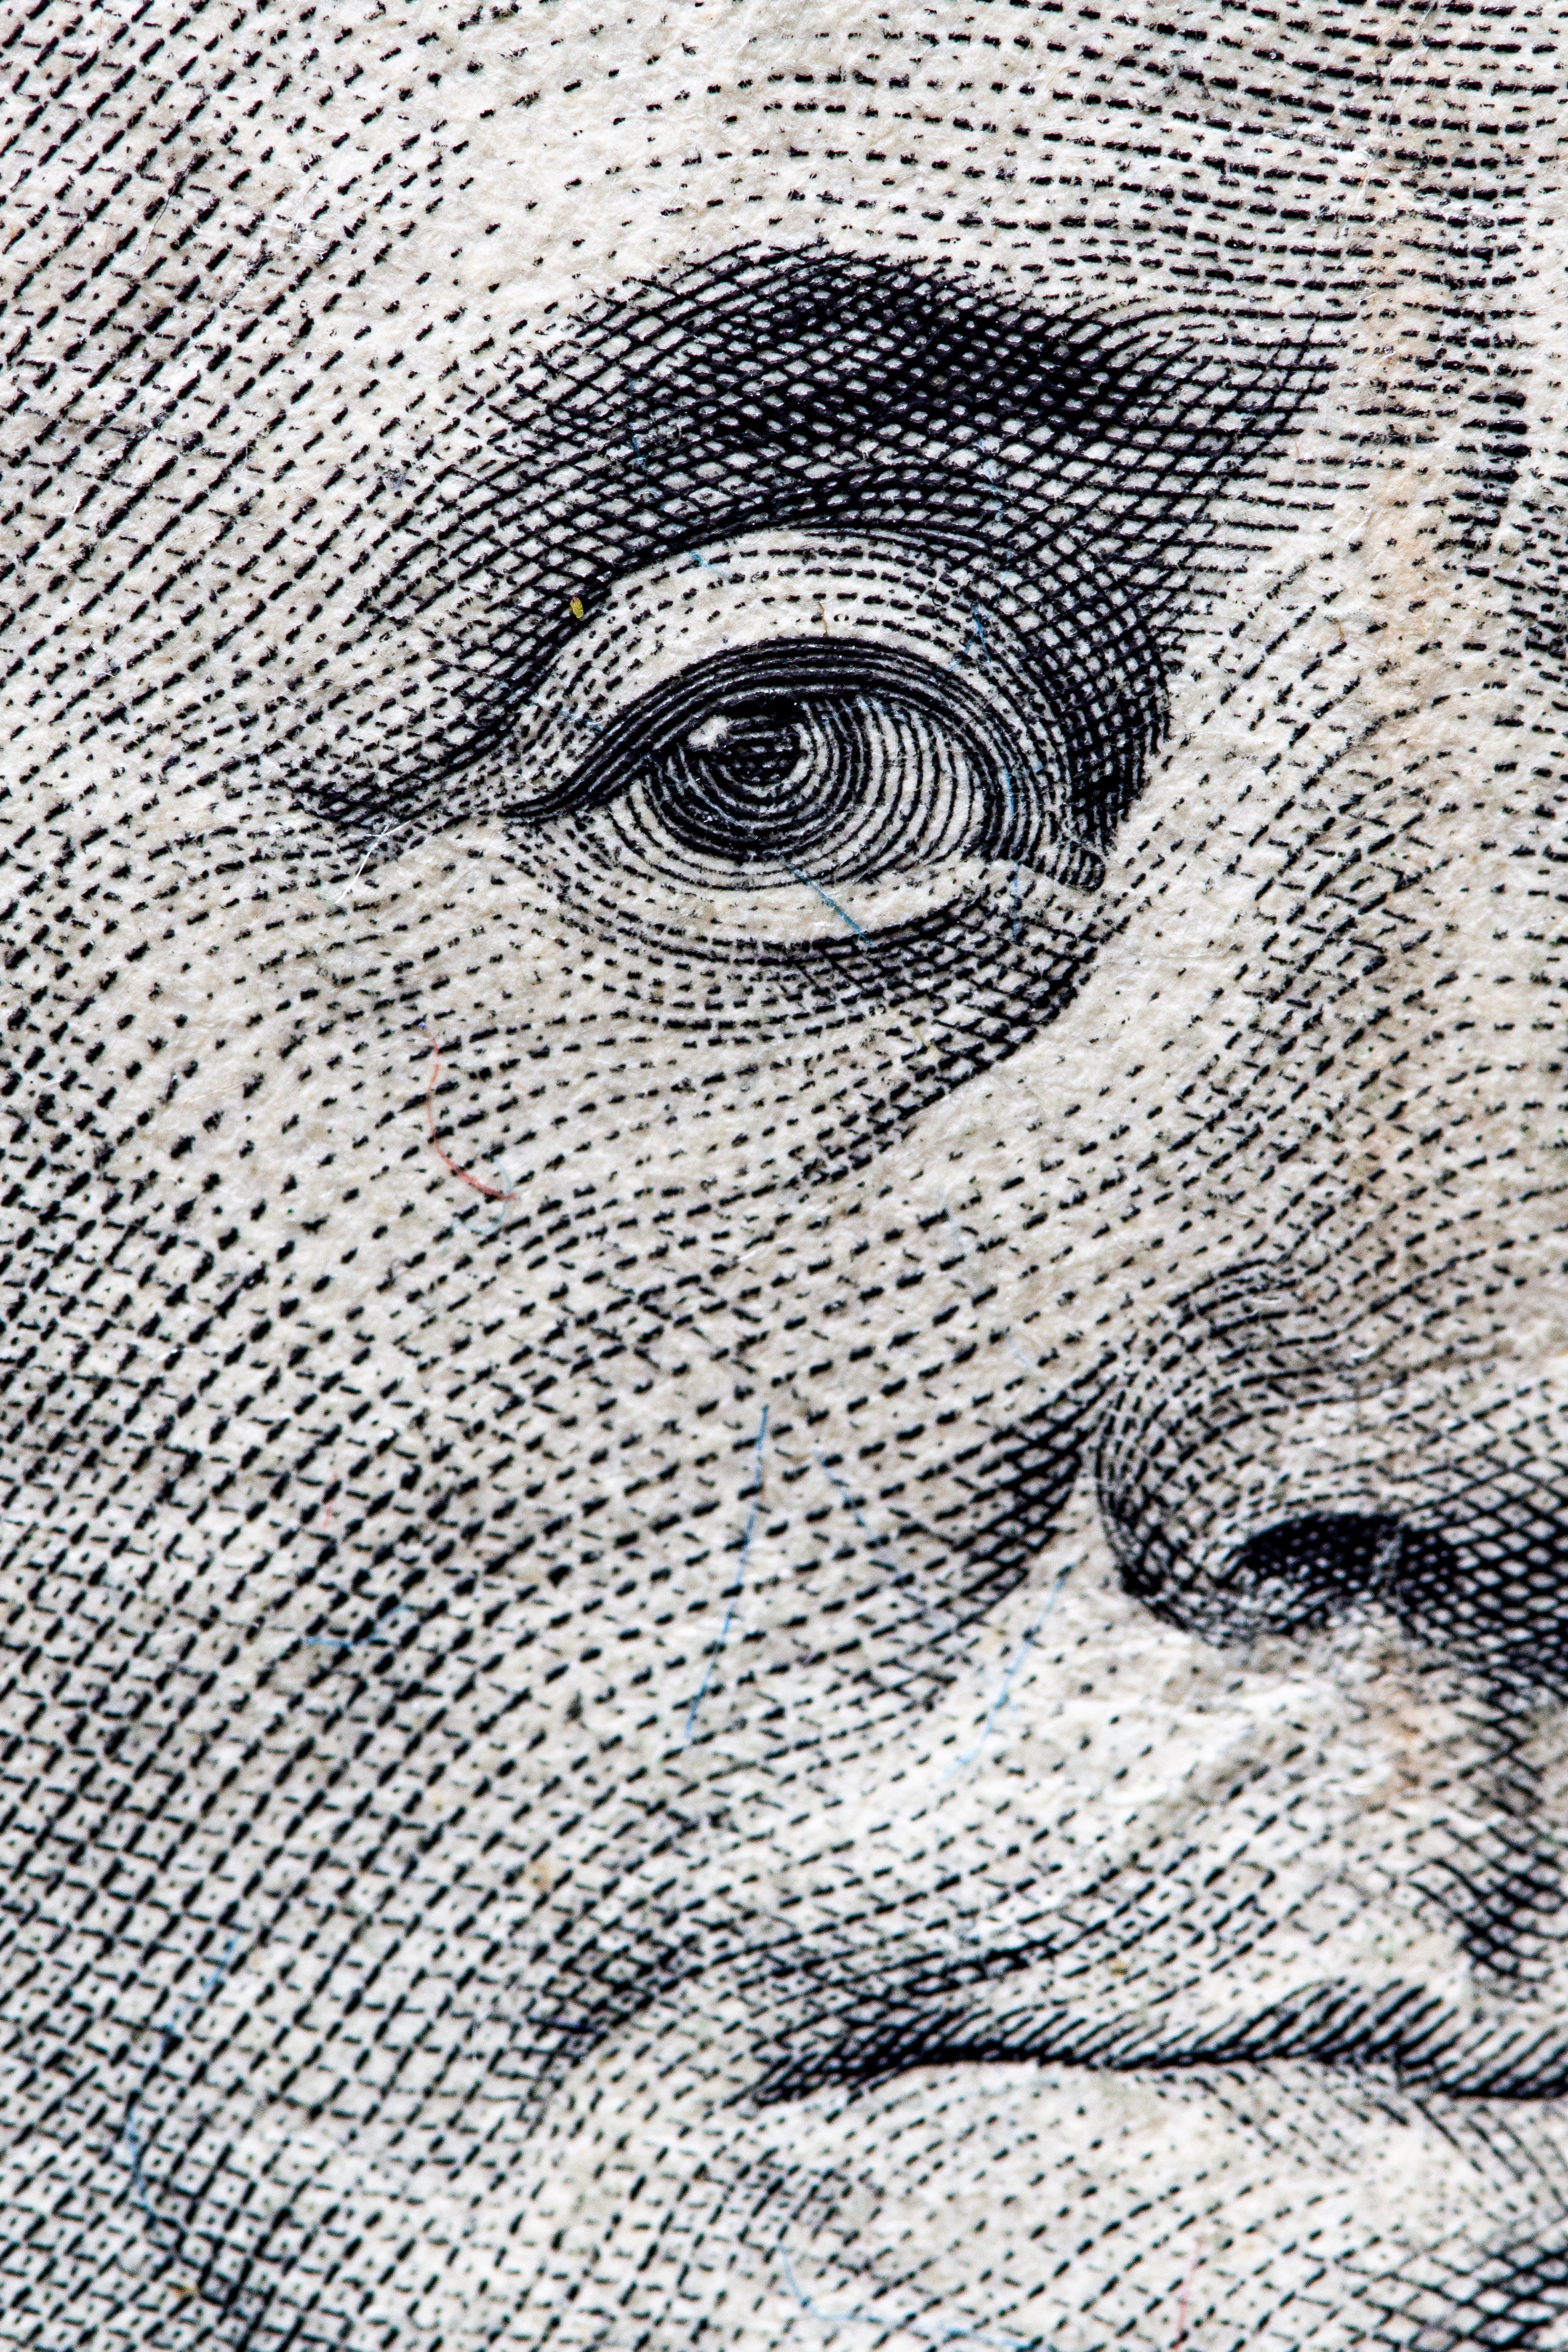 A close up of the image of Benjamin Franklin from a $100 bill